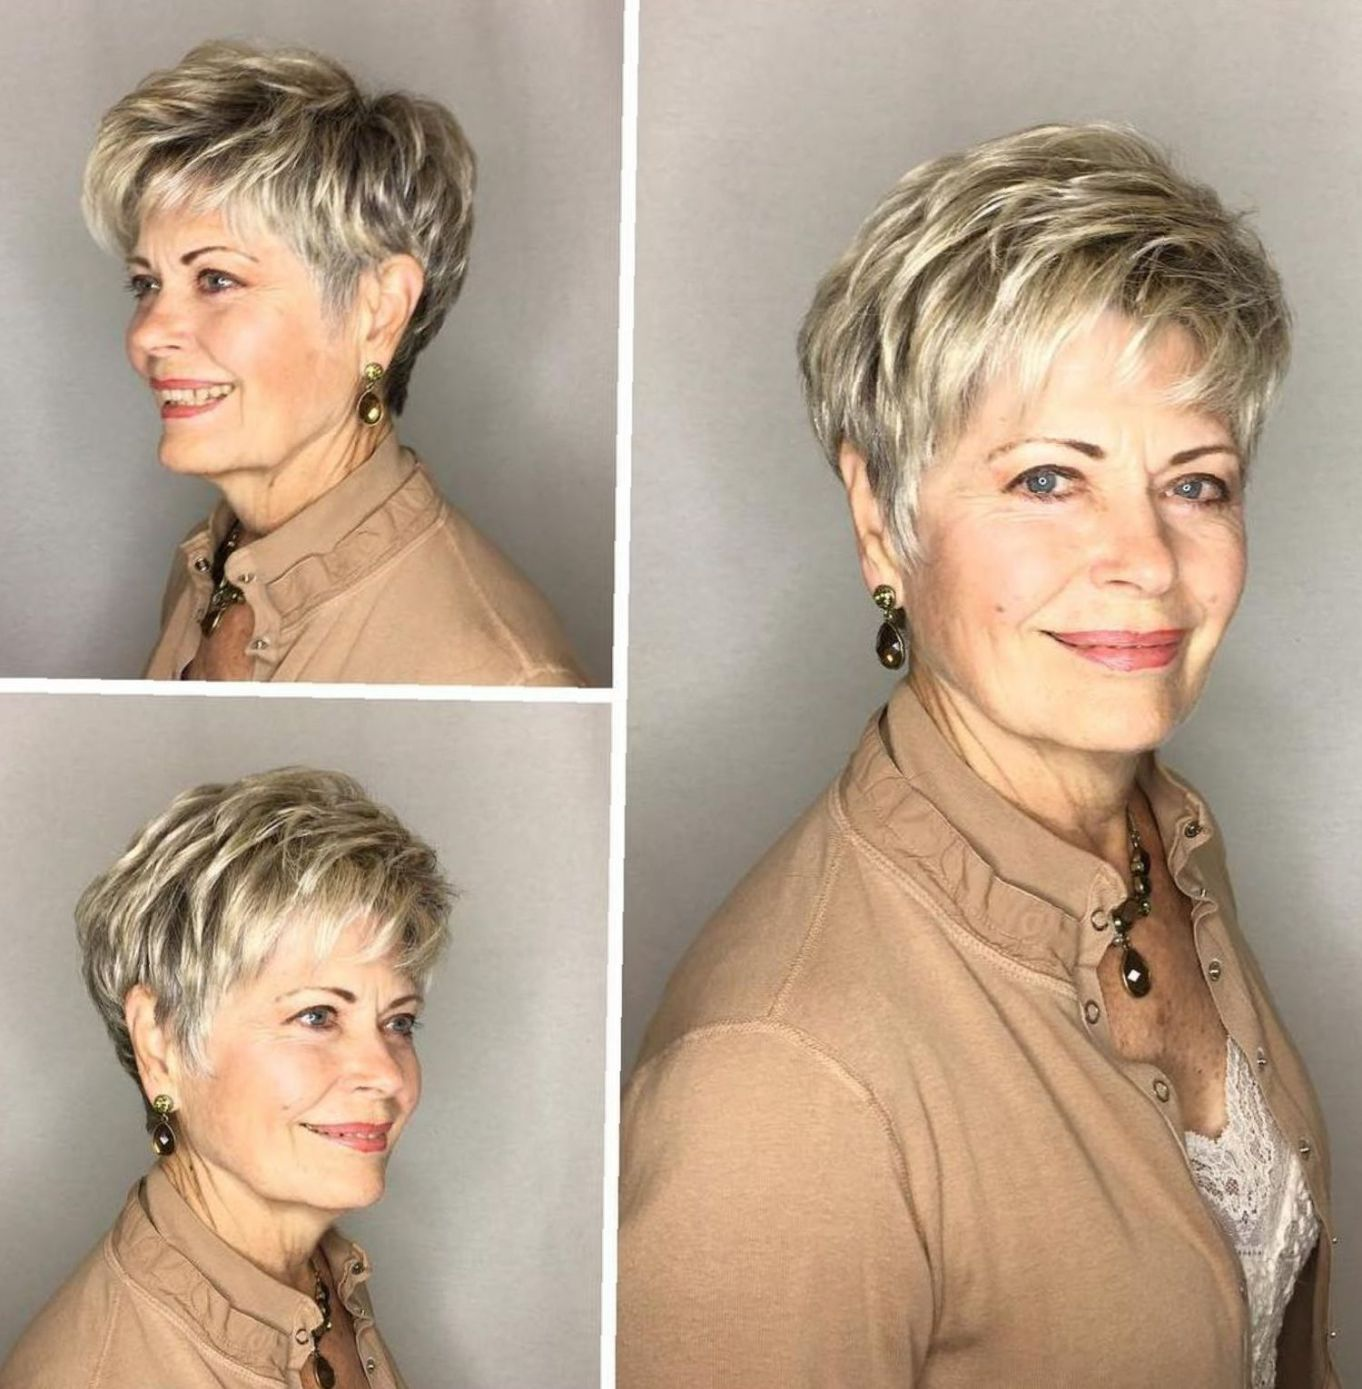 100 Short Haircut Styles for Over 60 Women in 2021 0dbdf68617bd00d00198c0939b2d0962